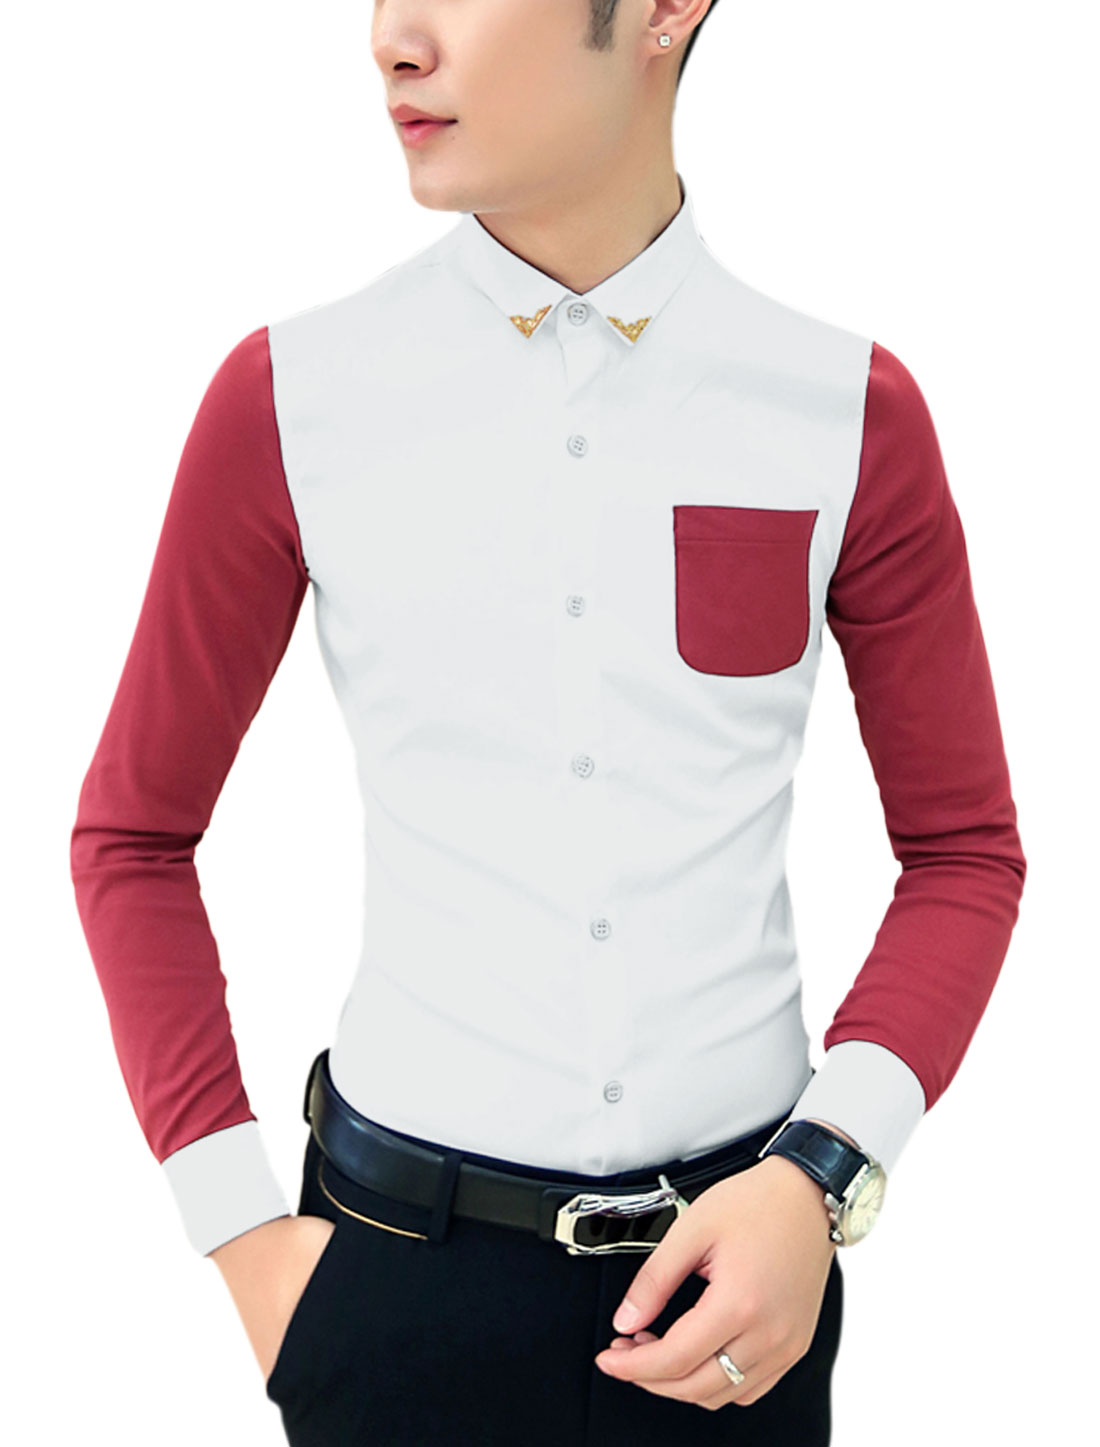 Men Contrast Long Sleeves Contrast Chest Pocket Slim Cut Shirt Warm Red White M